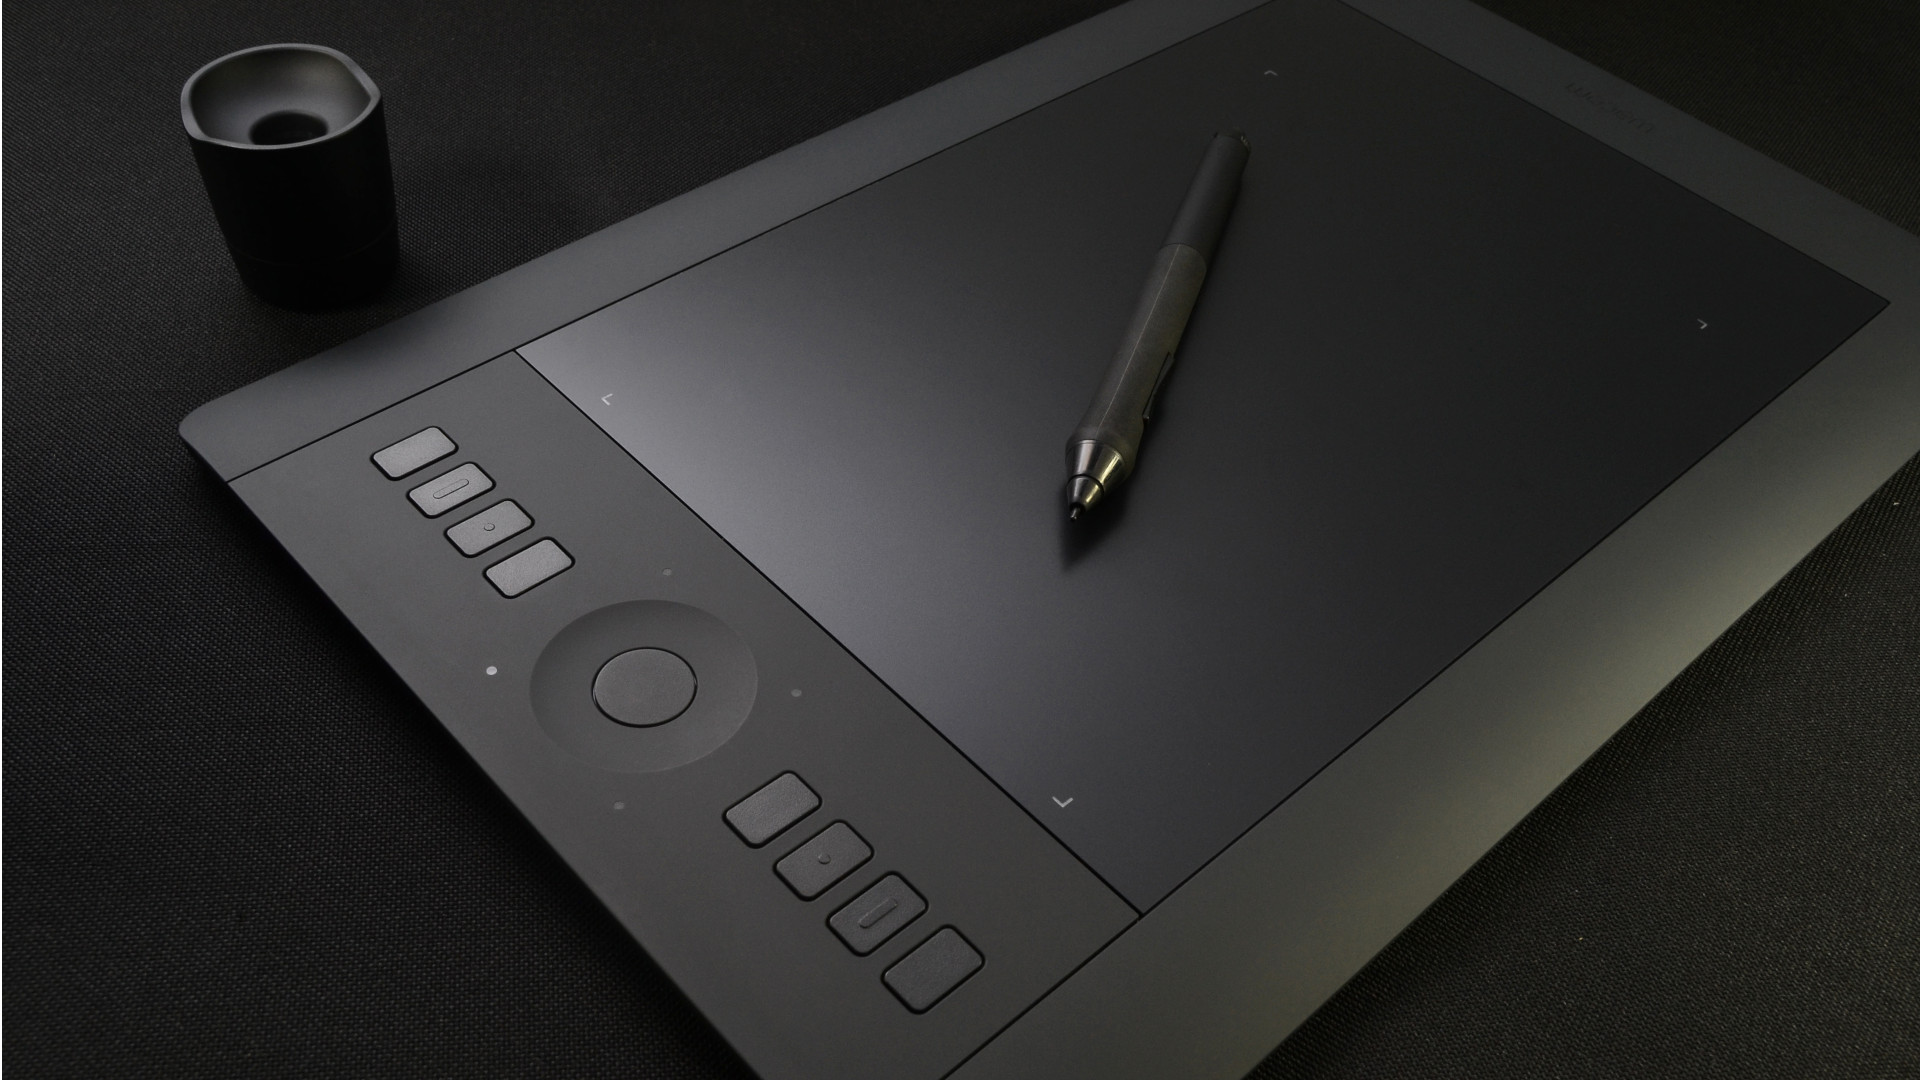 Side shot of a Wacom Intuos Graphics tablet